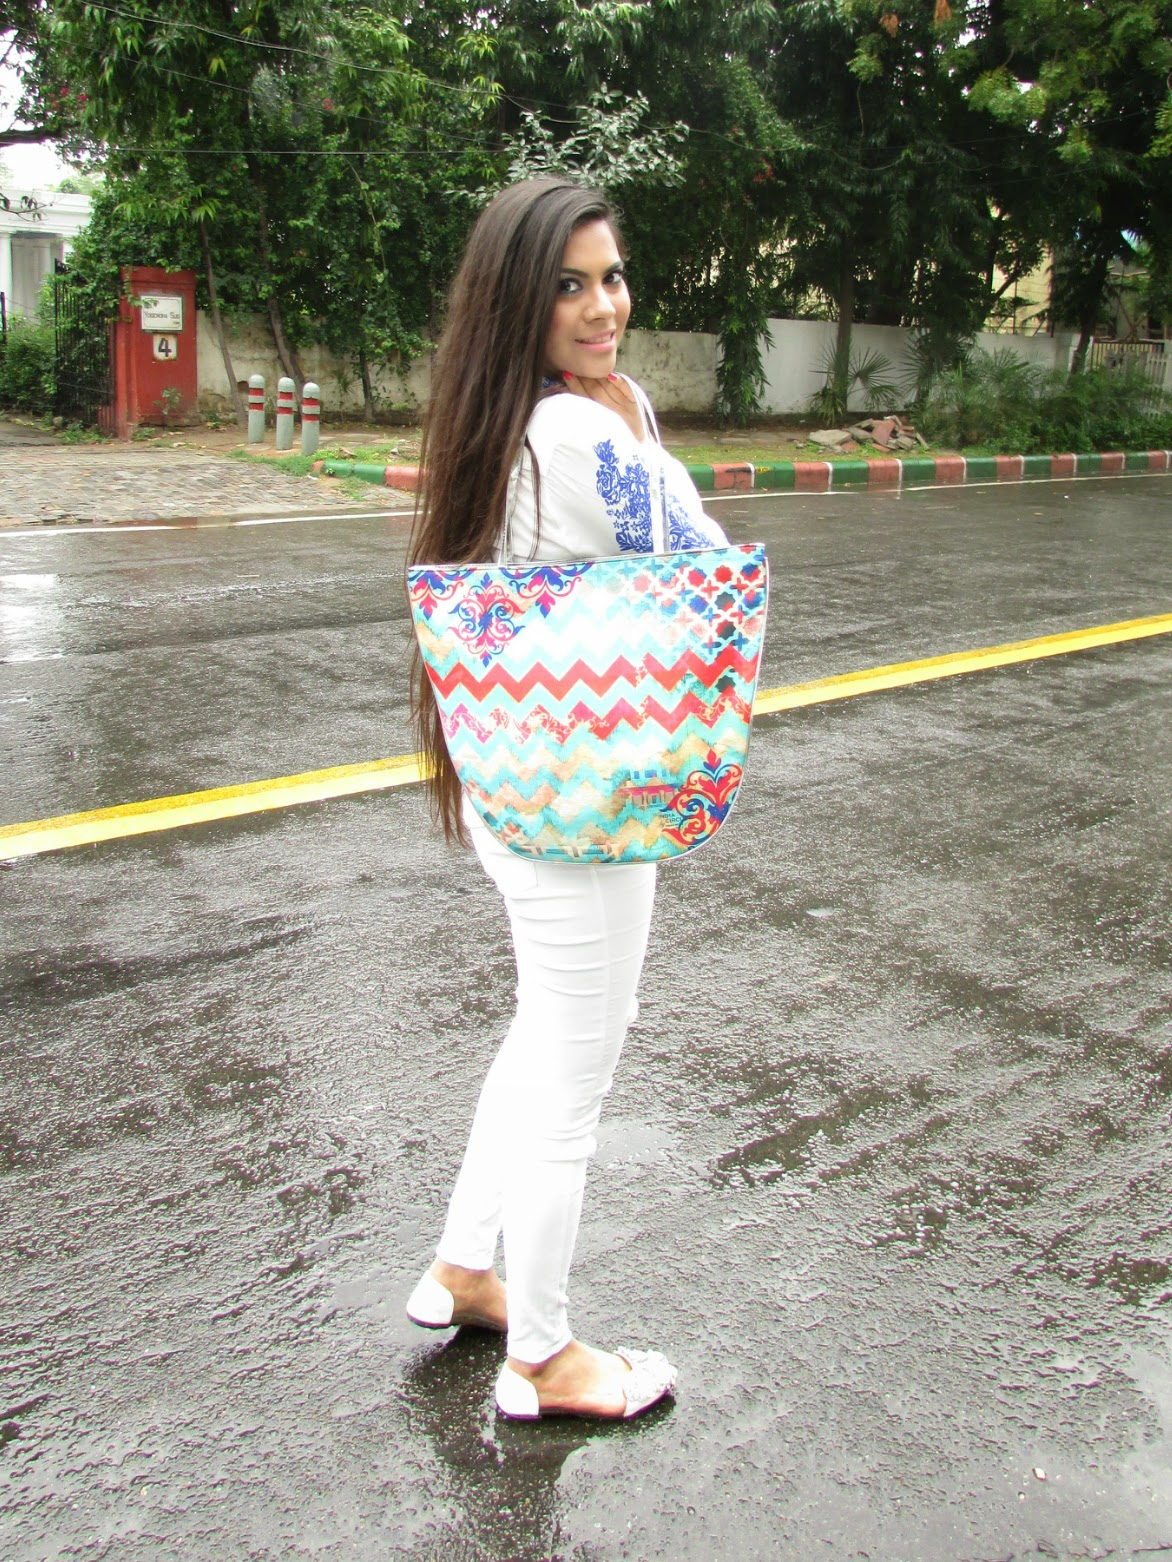 Jhola, spring bag, how to style jhola, colorful jhola bag, indiacircus, indiacircus bag, cheap designer bag,fashion, spring must haves, modern art bag,  cheap designer bags online, indian fashion blog,how to style shorts for winter, indiacircus, shorts, lotus shorts, cotton printed shorts, cheap shorts india online, lilac makeup, indiacircus review, ankle boots, colorful shorts, comfortable shorts, modern indian print, fusion shorts, indian fashion blog, Statement necklace, necklace, statement necklaces, big necklace, heavy necklaces , gold necklace, silver necklace, silver statement necklace, gold statement necklace, studded statement necklace , studded necklace, stone studded necklace, stone necklace, stove studded statement necklace, stone statement necklace, stone studded gold statement necklace, stone studded silver statement necklace, black stone necklace, black stone studded statement necklace, black stone necklace, black stone statement necklace, neon statement necklace, neon stone statement necklace, black and silver necklace, black and gold necklace, blank and silver statement necklace, black and gold statement necklace, silver jewellery, gold jewellery, stove jewellery, stone studded jewellery, imitation jewellery, artificial jewellery, junk jewellery, cheap jewellery ,indiacircus Statement necklace, indiacircus necklace, indiacircus statement necklaces,indiacircus big necklace, indiacircus heavy necklaces , indiacircus gold necklace, indiacircus silver necklace, indiacircus silver statement necklace,indiacircus gold statement necklace, indiacircus studded statement necklace , indiacircus studded necklace, indiacircus stone studded necklace, indiacircus stone necklace, indiacircus stove studded statement necklace, indiacircus stone statement necklace, indiacircus stone studded gold statement necklace, indiacircus stone studded silver statement necklace, indiacircus black stone necklace, indiacircus black stone studded statement necklace, indiacircus black stone necklace, indiacircus black stone statement necklace, indiacircus neon statement necklace, indiacircus neon stone statement necklace, indiacircus black and silver necklace, indiacircus black and gold necklace, indiacircus black  and silver statement necklace, indiacircus black and gold statement necklace, silver jewellery, indiacircus gold jewellery, eyeboxs stove jewellery, indiacircus stone studded jewellery, indiacircus imitation jewellery, indiacircus artificial jewellery, indiacircus junk jewellery, indiacircus cheap jewellery ,Cheap Statement necklace, Cheap necklace, Cheap statement necklaces,Cheap big necklace, Cheap heavy necklaces , Cheap gold necklace, Cheap silver necklace, Cheap silver statement necklace,Cheap gold statement necklace, Cheap studded statement necklace , Cheap studded necklace, Cheap stone studded necklace, Cheap stone necklace, Cheap stove studded statement necklace, Cheap stone statement necklace, Cheap stone studded gold statement necklace, Cheap stone studded silver statement necklace, Cheap black stone necklace, Cheap black stone studded statement necklace, Cheap black stone necklace, Cheap black stone statement necklace, Cheap neon statement necklace, Cheap neon stone statement necklace, Cheap black and silver necklace, Cheap black and gold necklace, Cheap black  and silver statement necklace, Cheap black and gold statement necklace, silver jewellery, Cheap gold jewellery, Cheap stove jewellery, Cheap stone studded jewellery, Cheap imitation jewellery, Cheap artificial jewellery, Cheap junk jewellery, Cheap cheap jewellery , Black pullover, black and grey pullover, black and white pullover, back cutout, back cutout pullover, back cutout sweater, back cutout jacket, back cutout top, back cutout tee, back cutout tee shirt, back cutout shirt, back cutout dress, back cutout trend, back cutout summer dress, back cutout spring dress, back cutout winter dress, High low pullover, High low sweater, High low jacket, High low top, High low tee, High low tee shirt, High low shirt, High low dress, High low trend, High low summer dress, High low spring dress, High low winter dress,indiacircus Black pullover, indiacircus black and grey pullover, indiacircus black and white pullover, indiacircus back cutout, indiacircus back cutout pullover, indiacircus back cutout sweater, indiacircus back cutout jacket, indiacircus back cutout top, indiacircus back cutout tee, indiacircus back cutout tee shirt, indiacircus back cutout shirt, indiacircus back cutout dress, I indiacircus back cutout trend, indiacircus back cutout summer dress, indiacircus back cutout spring dress, indiacircus back cutout winter dress, indiacircus High low pullover, indiacircus High low sweater, indiacircus High low jacket, indiacircus High low top, indiacircus High low tee, indiacircus High low tee shirt, indiacircus High low shirt, indiacircus High low dress, indiacircus High low trend, indiacircus High low summer dress, indiacircus High low spring dress, indiacircus High low winter dress, Cropped, cropped tee,cropped tee shirt , cropped shirt, cropped sweater, cropped pullover, cropped cardigan, cropped top, cropped tank top, Cheap Cropped, cheap cropped tee,cheap cropped tee shirt ,cheap  cropped shirt, cheap cropped sweater, cheap cropped pullover, cheap cropped cardigan,cheap  cropped top, cheap cropped tank top,eyeboxs Cropped, indiacircus cropped tee, indiacircus cropped tee shirt , indiacircus cropped shirt, indiacircus cropped sweater, indiacircus cropped pullover, indiacircus cropped cardigan, indiacircus cropped top, indiacircus cropped  top, winter Cropped, winter cropped tee, winter cropped tee shirt , winter cropped shirt, winter cropped sweater, winter cropped pullover, winter cropped cardigan, winter cropped top, winter cropped tank top,Leggings, winter leggings, warm leggings, winter warm leggings, fall leggings, fall warm leggings, tights, warm tights, winter tights, winter warm tights, fall tights, fall warm tights,indiacircus leggings, indiacircus tights, warm warm leggings, indiacircus warm tights, indiacircus winter warm tights, indiacircus fall warm tights, woollen tights , woollen leggings, eyeboxs woollen tights, indiacircus woollen leggings, woollen bottoms, indiacircus woollen bottoms, indiacircus woollen pants, woollen pants,Christmas , Christmas leggings, Christmas tights, lovelyshoes Christmas, lovelyshoes Christmas clothes, clothes for Christmas , eyeboxs Christmas leggings, eyeboxs Christmas tights, eyeboxs warm Christmas leggings, eyeboxs warm Christmas  tights, eyeboxs snowflake leggings, snowflake leggings, snowflake tights, eyeboxs rain deer tights, eyeboxs rain deer leggings, ugly Christmas sweater, Christmas tree, Christmas clothes, Santa clause,Wishlist, clothes wishlist, indiacircus wishlist, indiacircus, indiacircus.net , indiacircus wishlist, autumn wishlist,autumn indiacircus wishlist, indiacircus.com,autumn clothes wishlist, autumn shoes wishlist, autumn bags wishlist, autumn boots wishlist, autumn pullovers wishlist, autumn cardigans wishlist, autymn coats wishlist, indiacircus clothes wishlist, indiacircus bags wishlist, indiacircus bags wishlist, indiacircus boots wishlist, indiacircus pullover wishlist, indiacircus cardigans wishlist, indiacircus autum clothes wishlist, winter clothes, wibter clothes wishlist, winter wishlist, wibter pullover wishlist, winter bags wishlist, winter boots wishlist, winter cardigans wishlist, winter leggings wishlist, indiacircus winter clothes, indiacircus autumn clothes, indiacircus winter collection,indiacircus autumn collection,Cheap clothes online,cheap dresses online, cheap jumpsuites online, cheap leggings online, cheap shoes online, cheap wedges online , cheap skirts online, cheap jewellery online, cheap jackets online, cheap jeans online, cheap maxi online, cheap makeup online, cheap cardigans online, cheap accessories online, cheap coats online,cheap brushes online,cheap tops online, chines clothes online, Chinese clothes,Chinese jewellery ,Chinese jewellery online,Chinese heels online,Chinese electronics online,Chinese garments,Chinese garments online,Chinese products,Chinese products online,Chinese accessories online,Chinese inline clothing shop,Chinese online shop,Chinese online shoes shop,Chinese online jewellery shop,Chinese cheap clothes online,Chinese  clothes shop online, korean online shop,korean garments,korean makeup,korean makeup shop,korean makeup online,korean online clothes,korean online shop,korean clothes shop online,korean dresses online,korean dresses online,cheap Chinese clothes,cheap korean clothes,cheap Chinese makeup,cheap korean makeup,cheap korean shopping ,cheap Chinese shopping,cheap Chinese online shopping,cheap korean online shopping,cheap Chinese shopping website,cheap korean shopping website, cheap online shopping,online shopping,how to shop online ,how to shop clothes online,how to shop shoes online,how to shop jewellery online,how to shop mens clothes online, mens shopping online,boys shopping online,boys jewellery online,mens online shopping,mens online shopping website,best Chinese shopping website, Chinese online shopping website for men,best online shopping website for women,best korean online shopping,best korean online shopping website,korean fashion,korean fashion for women,korean fashion for men,korean fashion for girls,korean fashion for boys,best chinese online shopping,best chinese shopping website,best chinese online shopping website,wholesale chinese shopping website,wholesale shopping website,chinese wholesale shopping online,chinese wholesale shopping, chinese online shopping on wholesale prices, clothes on wholesale prices,cholthes on wholesake prices,clothes online on wholesales prices,online shopping, online clothes shopping, online jewelry shopping,how to shop online, how to shop clothes online, how to shop earrings online, how to shop,skirts online, dresses online,jeans online, shorts online, tops online, blouses online,shop tops online, shop blouses online, shop skirts online, shop dresses online, shop botoms online, shop summer dresses online, shop bracelets online, shop earrings online, shop necklace online, shop rings online, shop highy low skirts online, shop sexy dresses onle, men's clothes online, men's shirts online,men's jeans online, mens.s jackets online, mens sweaters online, mens clothes, winter coats online, sweaters online, cardigens online,beauty , fashion,beauty and fashion,beauty blog, fashion blog , indian beauty blog,indian fashion blog, beauty and fashion blog, indian beauty and fashion blog, indian bloggers, indian beauty bloggers, indian fashion bloggers,indian bloggers online, top 10 indian bloggers, top indian bloggers,top 10 fashion bloggers, indian bloggers on blogspot,home remedies, how to,indiacircus online shopping,indiacircus online shopping review,indiacircus.com review,indiacircus online clothing store,indiacircus online chinese store,indiacircus online shopping,indiacircus site review,indiacircus.com site review, indiacircus Chines fashion, indiacircus , indiacircus.com, indiacircus clothing, indiacircus dresses, indiacircus shoes, indiacircus accessories,indiacircus men cloths ,indiacircus makeup, indiacircus helth products,indiacircus Chinese online shopping, indiacircus Chinese store, indiacircus online chinese shopping, indiacircus lchinese shopping online,indiacircus, indiacircus dresses, indiacircus clothes, indiacircus garments, indiacircus clothes, indiacircus skirts, indiacircus pants, indiacircus tops, indiacircus cardigans, indiacircus leggings, indiacircus fashion , indiacircus clothes fashion, indiacircus footwear, indiacircus fashion footwear, indiacircus jewellery, indiacircus fashion jewellery, indiacircus rings, indiacircus necklace, indiacircus bracelets, indiacircus earings,Autumn, fashion, indiacircus, wishlist,Winter,fall, fall abd winter, winter clothes , fall clothes, fall and winter clothes, fall jacket, winter jacket, fall and winter jacket, fall blazer, winter blazer, fall and winter blazer, fall coat , winter coat, falland winter coat, fall coverup, winter coverup, fall and winter coverup, outerwear, coat , jacket, blazer, fall outerwear, winter outerwear, fall and winter outerwear, woolen clothes, wollen coat, woolen blazer, woolen jacket, woolen outerwear, warm outerwear, warm jacket, warm coat, warm blazer, warm sweater, coat , white coat, white blazer, white coat, white woolen blazer, white coverup, white woolens, indiacircus online shopping review,indiacircus.com review,indiacircus online clothing store,indiacircus online chinese store,indiacircus online shopping,indiacircus site review, indiacircus.com site review, indiacircus Chines fashion, indiacircus, indiacircus.com, indiacircus clothing, indiacircus dresses, indiacircus shoes, indiacircus accessories,indiacircus men cloths ,indiacircus makeup, indiacircus helth products,indiacircus Chinese online shopping, indiacircus Chinese store, indiacircus online chinese shopping, indiacircus chinese shopping online,indiacircus, indiacircus dresses, indiacircus clothes, indiacircus garments, indiacircus clothes, indiacircus skirts, indiacircus pants, indiacircus tops, indiacircus cardigans, indiacircus leggings, indiacircus fashion , indiacircus clothes fashion, indiacircus footwear, indiacircus fashion footwear, indiacircus jewellery, indiacircus fashion jewellery, indiacircus rings, indiacircus necklace, indiacircus bracelets, indiacircus earings,latest fashion trends online, online shopping, online shopping in india, online shopping in india from america, best online shopping store , best fashion clothing store, best online fashion clothing store, best online jewellery store, best online footwear store, best online store, beat online store for clothes, best online store for footwear, best online store for jewellery, best online store for dresses, worldwide shipping free, free shipping worldwide, online store with free shipping worldwide,best online store with worldwide shipping free,low shipping cost, low shipping cost for shipping to india, low shipping cost for shipping to asia, low shipping cost for shipping to korea,Friendship day , friendship's day, happy friendship's day, friendship day outfit, friendship's day outfit, how to wear floral shorts, floral shorts, styling floral shorts, how to style floral shorts, how to wear shorts, how to style shorts, how to style style denim shorts, how to wear denim shorts,how to wear printed shorts, how to style printed shorts, printed shorts, denim shorts, how to style black shorts, how to wear black shorts, how to wear black shorts with black T-shirts, how to wear black T-shirt, how to style a black T-shirt, how to wear a plain black T-shirt, how to style black T-shirt,how to wear shorts and T-shirt, what to wear with floral shorts, what to wear with black floral shorts,how to wear all black outfit, what to wear on friendship day, what to wear on a date, what to wear on a lunch date, what to wear on lunch, what to wear to a friends house, what to wear on a friends get together, what to wear on friends coffee date , what to wear for coffee,beauty,Pink, pink pullover, pink sweater, pink jumpsuit, pink sweatshirt, neon pink, neon pink sweater, neon pink pullover, neon pink jumpsuit , neon pink cardigan, cardigan , pink cardigan, sweater, jumper, jumpsuit, pink jumper, neon pink jumper, pink jacket, neon pink jacket, winter clothes, oversized coat, oversized winter clothes, oversized pink coat, oversized coat, oversized jacket, indiacircus pink, indiacircus pink sweater, indiacircus pink jacket, indiacircus pink cardigan, indiacircus pink coat, indiacircus pink jumper, indiacircus neon pink, indiacircus neon pink jacket, indiacircus neon pink coat, indiacircus neon pink sweater, indiacircus neon pink jumper, indiacircus neon pink pullover, pink pullover, neon pink pullover,fur,furcoat,furjacket,furblazer,fur pullover,fur cardigan,front open fur coat,front open fur jacket,front open fur blazer,front open fur pullover,front open fur cardigan,real fur, real fur coat,real fur jacket,real fur blazer,real fur pullover,real fur cardigan, soft fur,soft fur coat,soft fur jacket,soft furblazer,soft fur pullover,sof fur cardigan, white fur,white fur coat,white fur jacket,white fur blazer, white fur pullover, white fur cardigan,trench, trench coat, trench coat online, trench coat india, trench coat online India, trench cost price, trench coat price online, trench coat online price, cheap trench coat, cheap trench coat online, cheap trench coat india, cheap trench coat online India, cheap trench coat , Chinese trench coat, Chinese coat, cheap Chinese trench coat, Korean coat, Korean trench coat, British coat, British trench coat, British trench coat online, British trench coat online, New York trench coat, New York trench coat online, cheap new your trench coat, American trench coat, American trench coat online, cheap American trench coat, low price trench coat, low price trench coat online , low price trench coat online india, low price trench coat india, indiacircus trench, indiacircus trench coat, indiacircus trench coat online, indiacircus trench coat india, indiacircus trench coat online India, indiacircus trench cost price,indiacircus trench coat price online, indiacircus trench coat online price, indiacircus cheap trench coat, indiacircus indiacircus trench coat online, indiacircus cheap trench coat india, indiacircus cheap trench coat online India, indiacircus cheap trench coat , indiacircus Chinese trench coat, indiacircus Chinese coat, indiacircus cheap Chinese trench coat, indiacircus Korean coat, indiacircus Korean trench coat, indiacircus British coat, indiacircus British trench coat, indiacircus British trench coat online, indiacircus British trench coat online, indiacircus New York trench coat, indiacircus New York trench coat online, indiacircus cheap new your trench coat, indiacircus American trench coat, indiacircus American trench coat online, indiacircus cheap American trench coat, indiacircus low price trench coat, indiacircus low price trench coat online , indiacircus low price trench coat online india, indiacircus low price trench coat india, how to wear trench coat, how to wear trench, how to style trench coat, how to style coats, how to style long coats, how to style winter coats, how to style winter trench coats, how to style winter long coats, how to style warm coats, how to style beige coat, how to style beige long coat, how to style beige trench coat, how to style beige coat, beige coat, beige long coat, beige long coat, beige frock coat, beige double breasted coat, double breasted coat, how to style frock coat, how to style double breasted coat, how to wear beige trench coat,how to wear beige coat, how to wear beige long coat, how to wear beige frock coat, how to wear beige double button coat, how to wear beige double breat coat, double button coat, what us trench coat, uses of trench coat, what is frock coat, uses of frock coat, what is long coat, uses of long coat, what is double breat coat, uses of double breasted coat, what is bouton up coat, uses of button up coat, what is double button coat, uses of double button coat, velvet leggings, velvet tights, velvet bottoms, embroided velvet leggings, embroided velvet tights, pattern tights, velvet pattern tights, floral tights , floral velvet tights, velvet floral tights, embroided  velvet leggings, pattern leggings , velvet pattern leggings , floral leggings , floral velvet leggings, velvet floral leggings ,eyeboxs velvet leggings, indiacircus velvet tights, indiacircus velvet bottoms,indiacircus embroided velvet leggings,indiacircus embroided velvet tights, indiacircus pattern tights, indiacircus velvet pattern tights, indiacircus floral tights , indiacircus floral velvet tights, indiacircus velvet floral tights, indiacircus embroided  velvet leggings, indiacircus pattern leggings , indiacircus velvet pattern leggings , indiacircus floral leggings ,indiacircus floral velvet leggings, indiacircus velvet floral leggings ,indiacircus studded heels, studded heels , stud heels, valentinos , valentino heels, valentine shoes, valentino studded shoes, valentino studded heels, valentino studded sandels, black valentino, valentino footwear ,shoe sale , valentino look alikes,india , indian , indianculure , indian trends , indian clothes , indian embriodaty , clutch , sling bag , designer , designer clutch , designer sling bag , designer bag , indiacircus , indiacircus.com , indiacircus review , indiacircus.com review , indiacircus coupon , indiacircus discount coupon , indiacircus discount, krsna , krsna metha , krsna metha designer , krsna metha designs , krsna metha clutch ,krsna metha indiacircus , spring bag , bag for spring , spring clutch ,